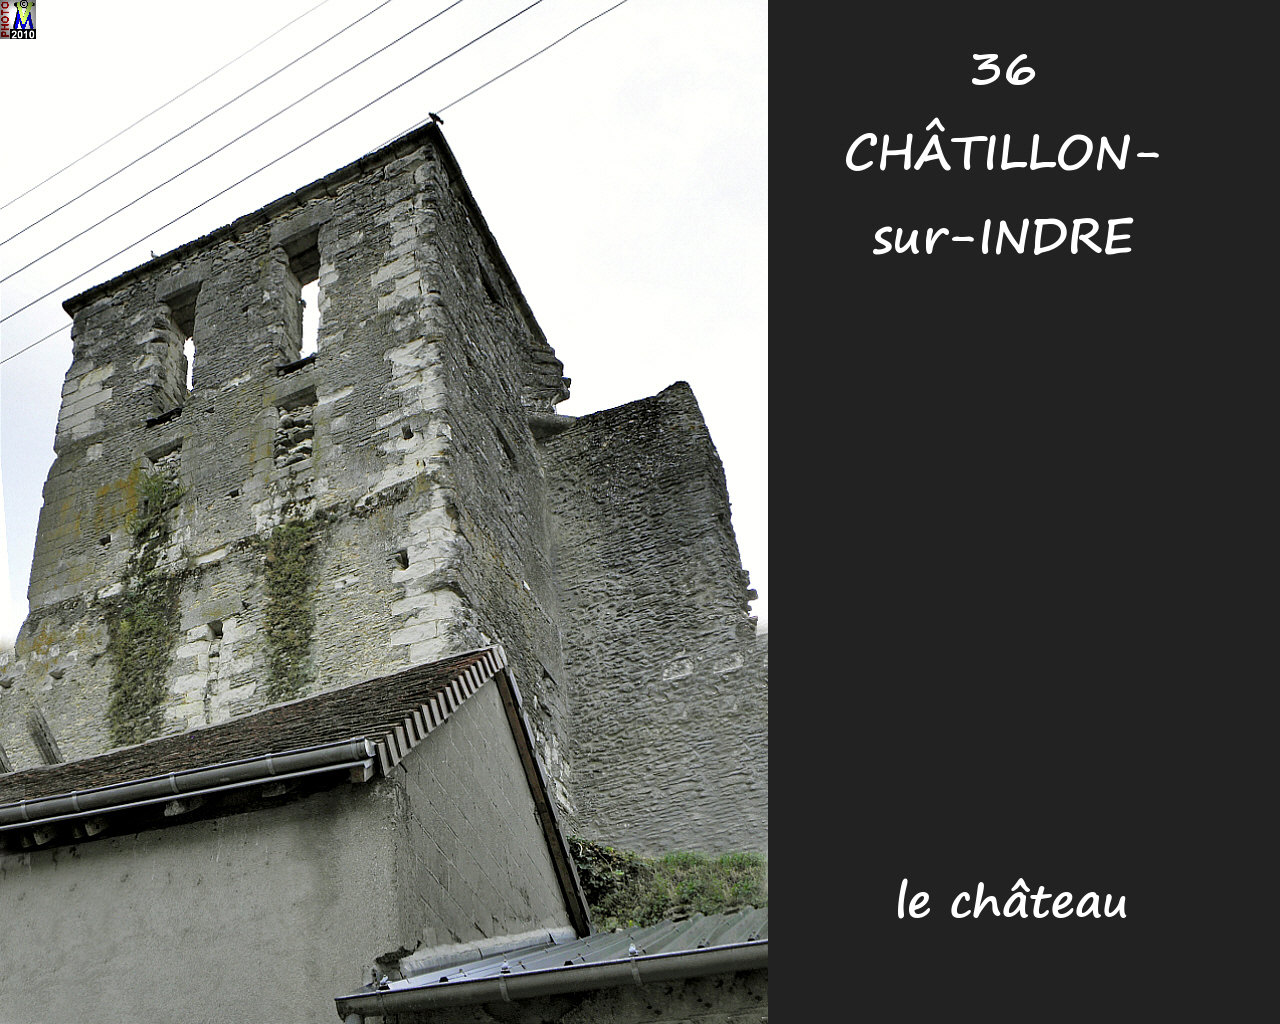 36CHATILLON-INDRE_chateau_104.jpg